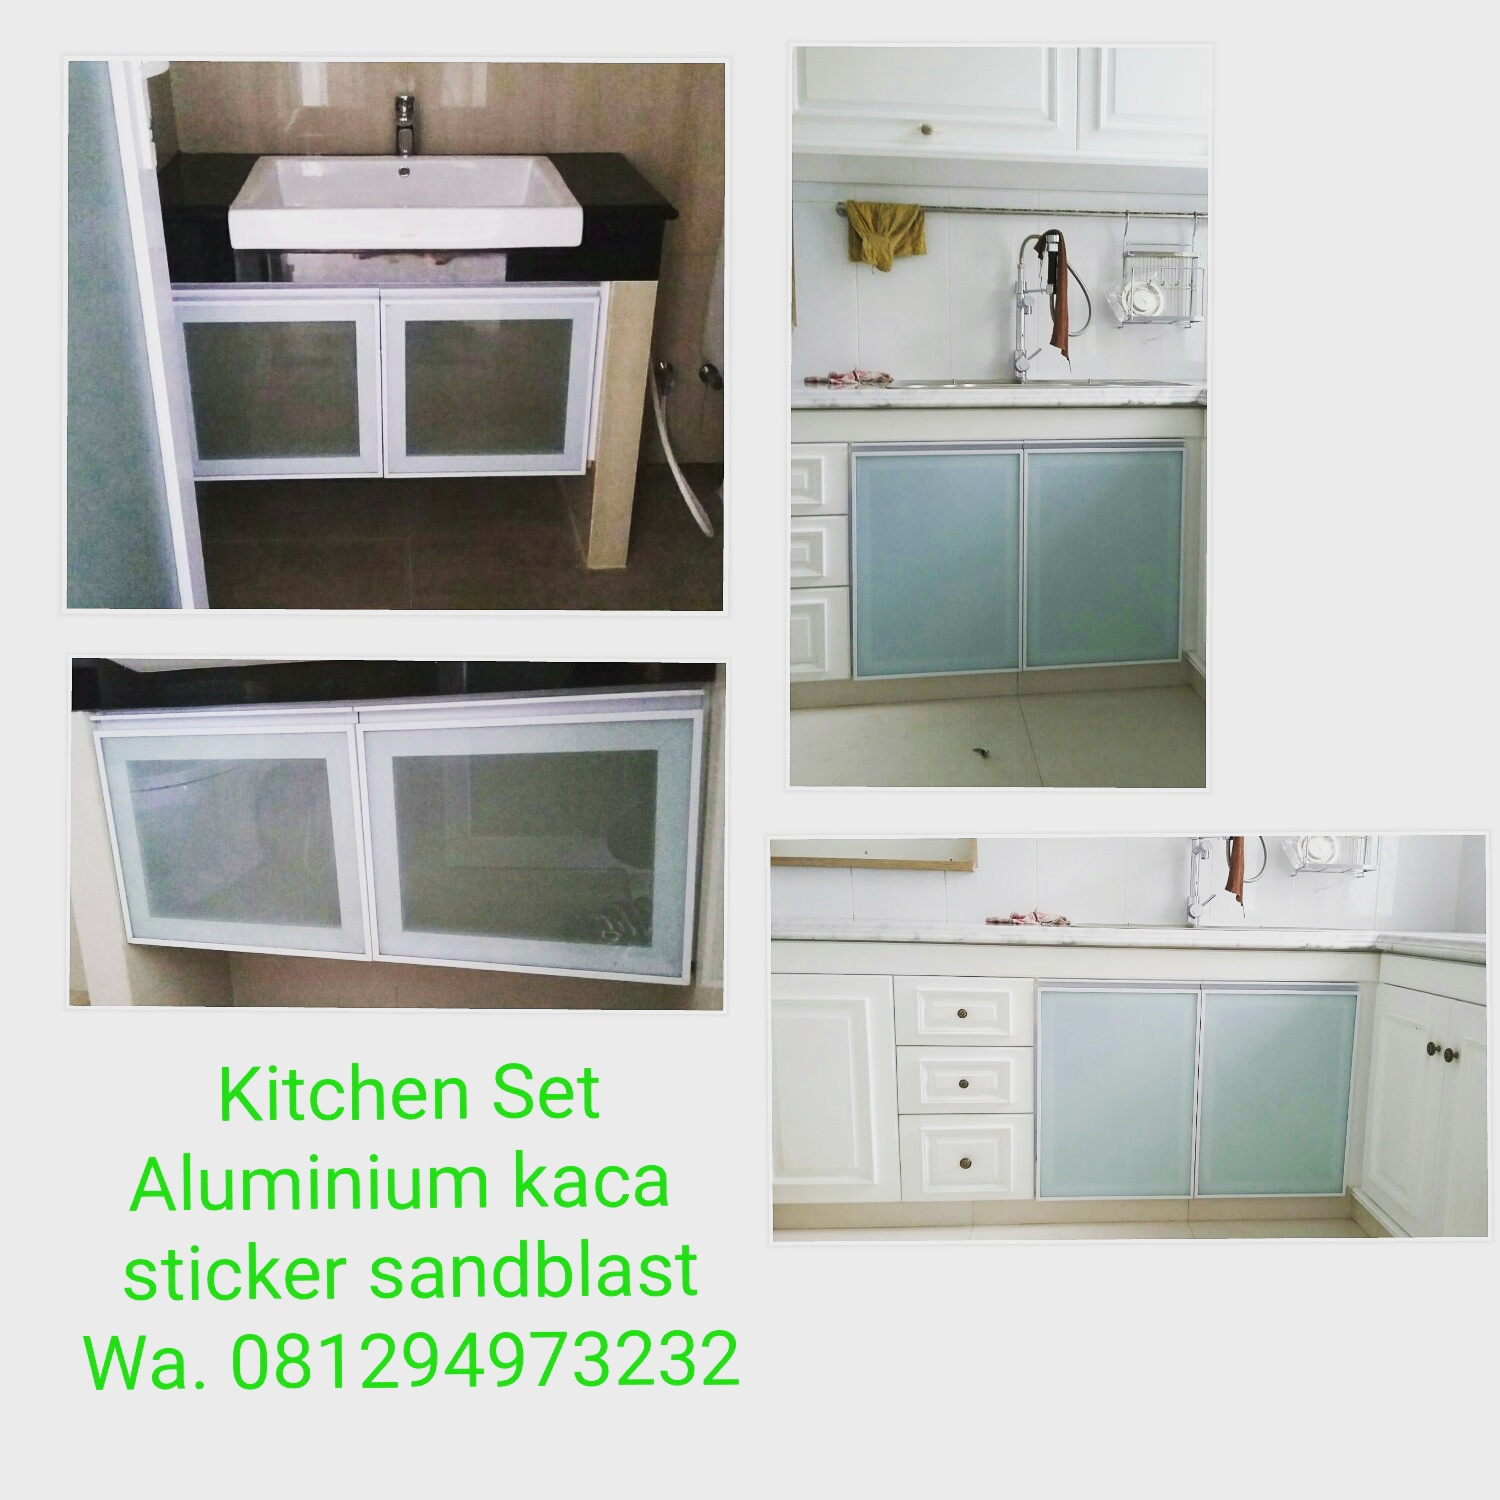 Mau Kitchen Set Murah & Minimalis & Awet & Anti Rayap